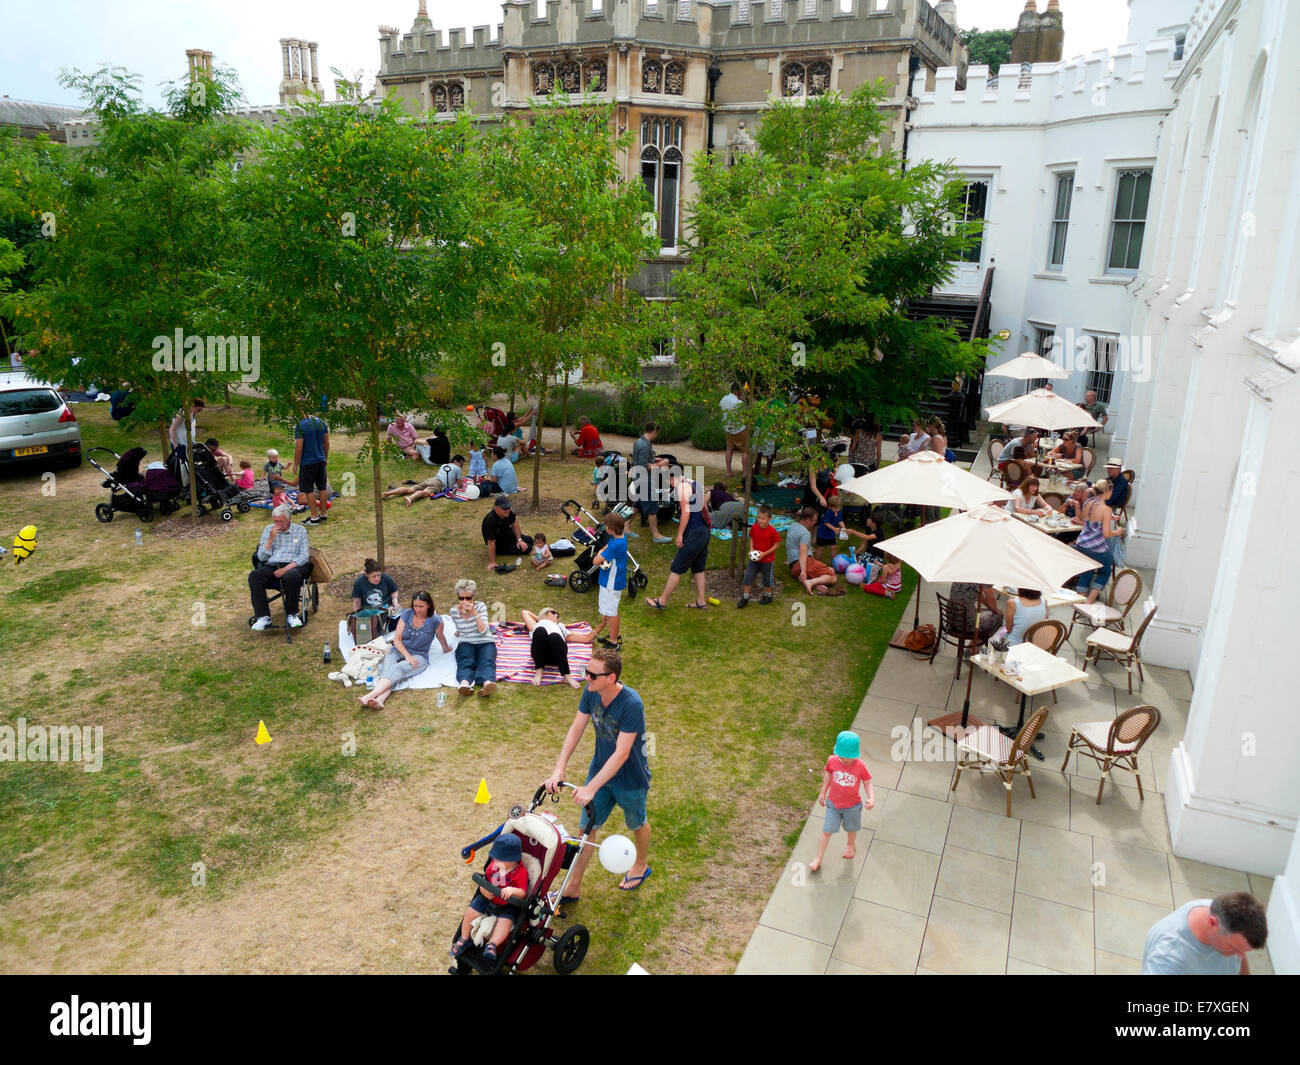 Garden Party at Strawberry Hill House, Twickenham, London UK  KATHY DEWITT - Stock Image